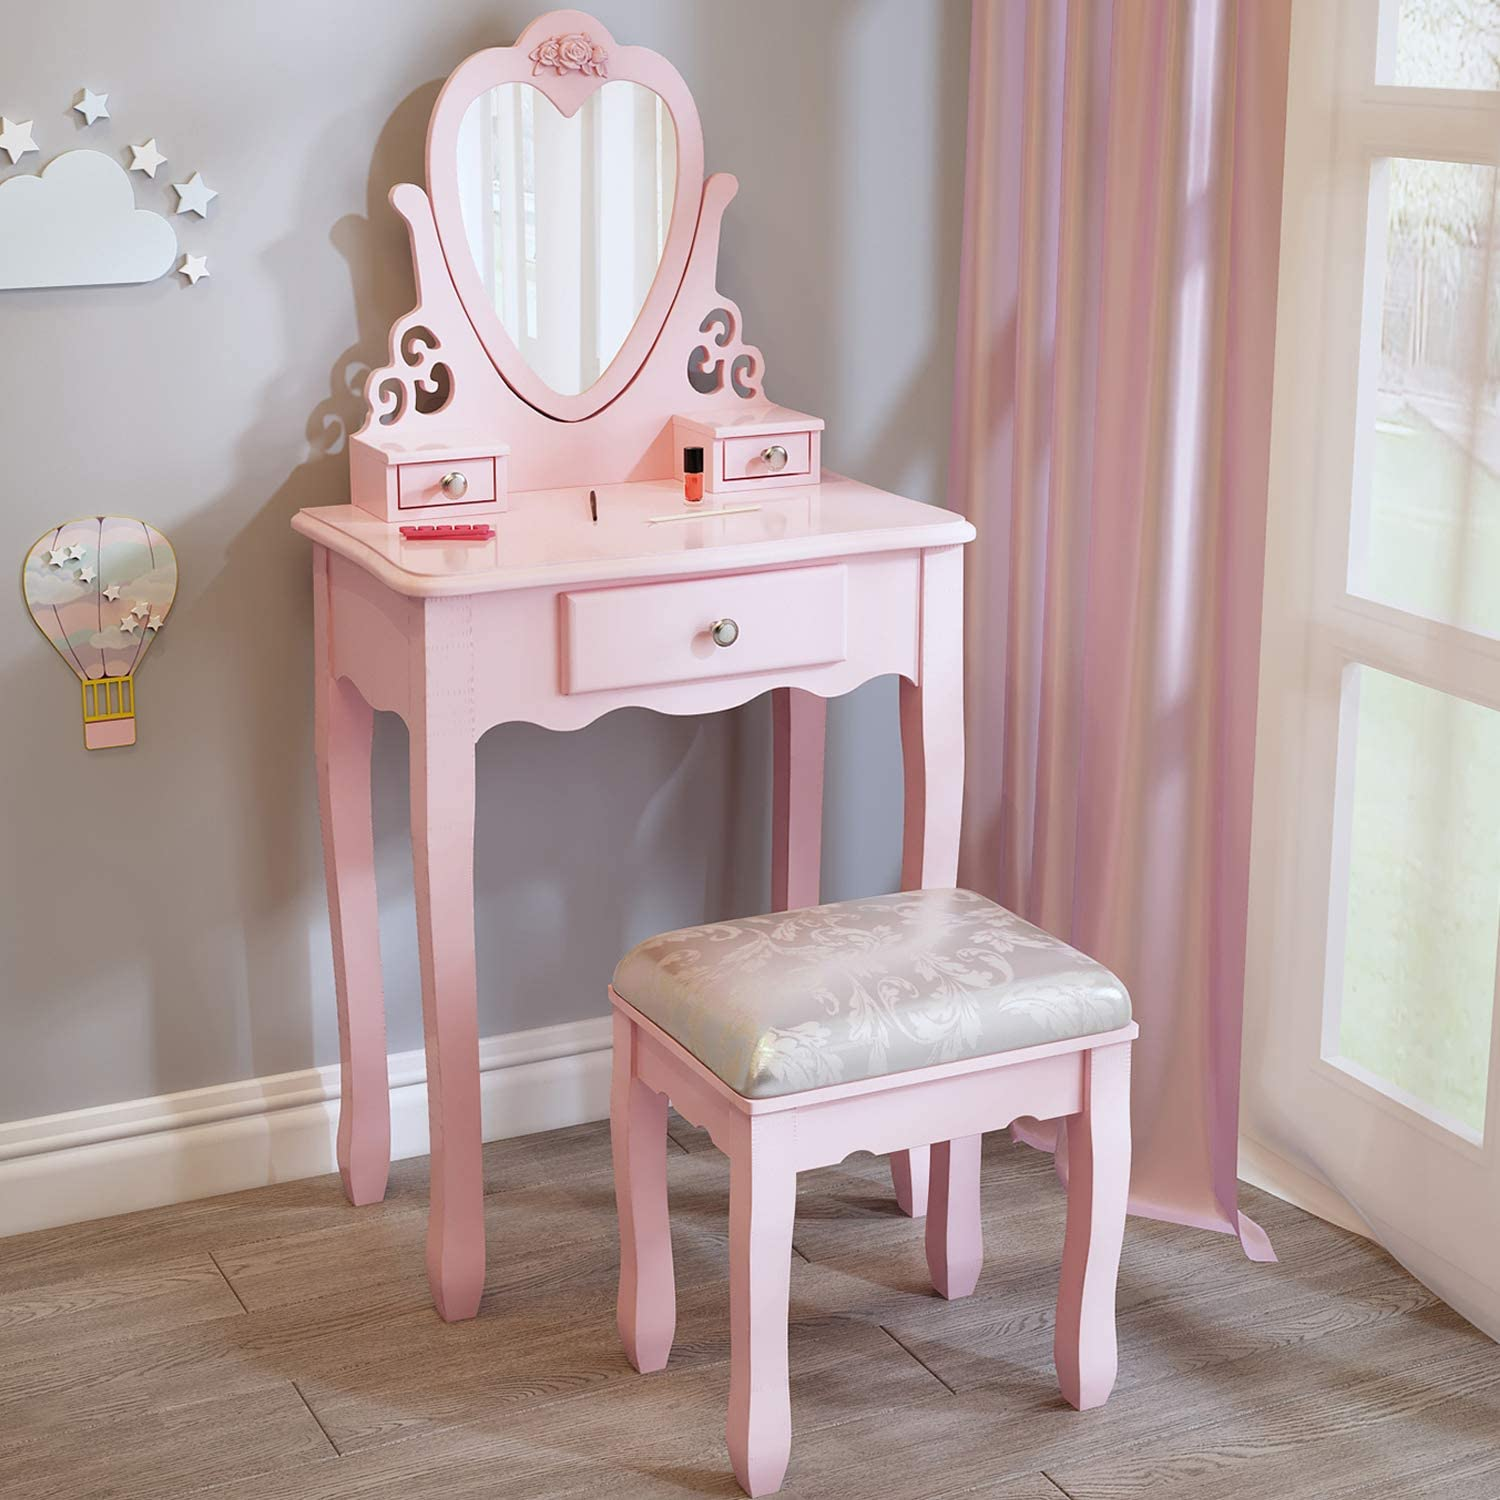 J Jeffordoutlet Pink Girls Dressing Table Little Vanity Table For 3 4 5 6 7 8 Years Old Kid Girl European Princess Style Dressing Table Amazon Co Uk Kitchen Home